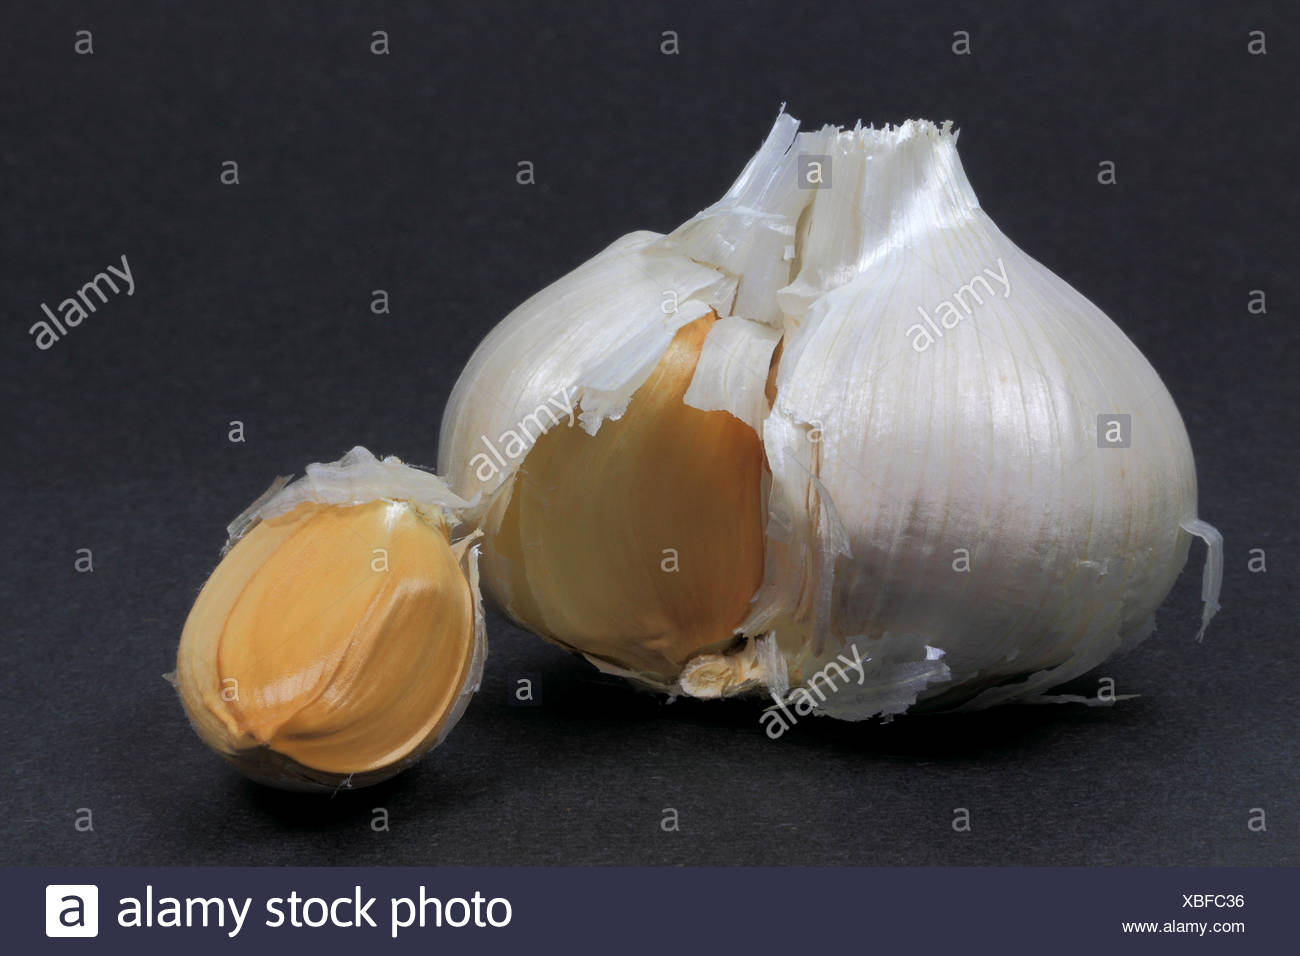 Single Bulb and clove Elephant Garlic. - Stock Image